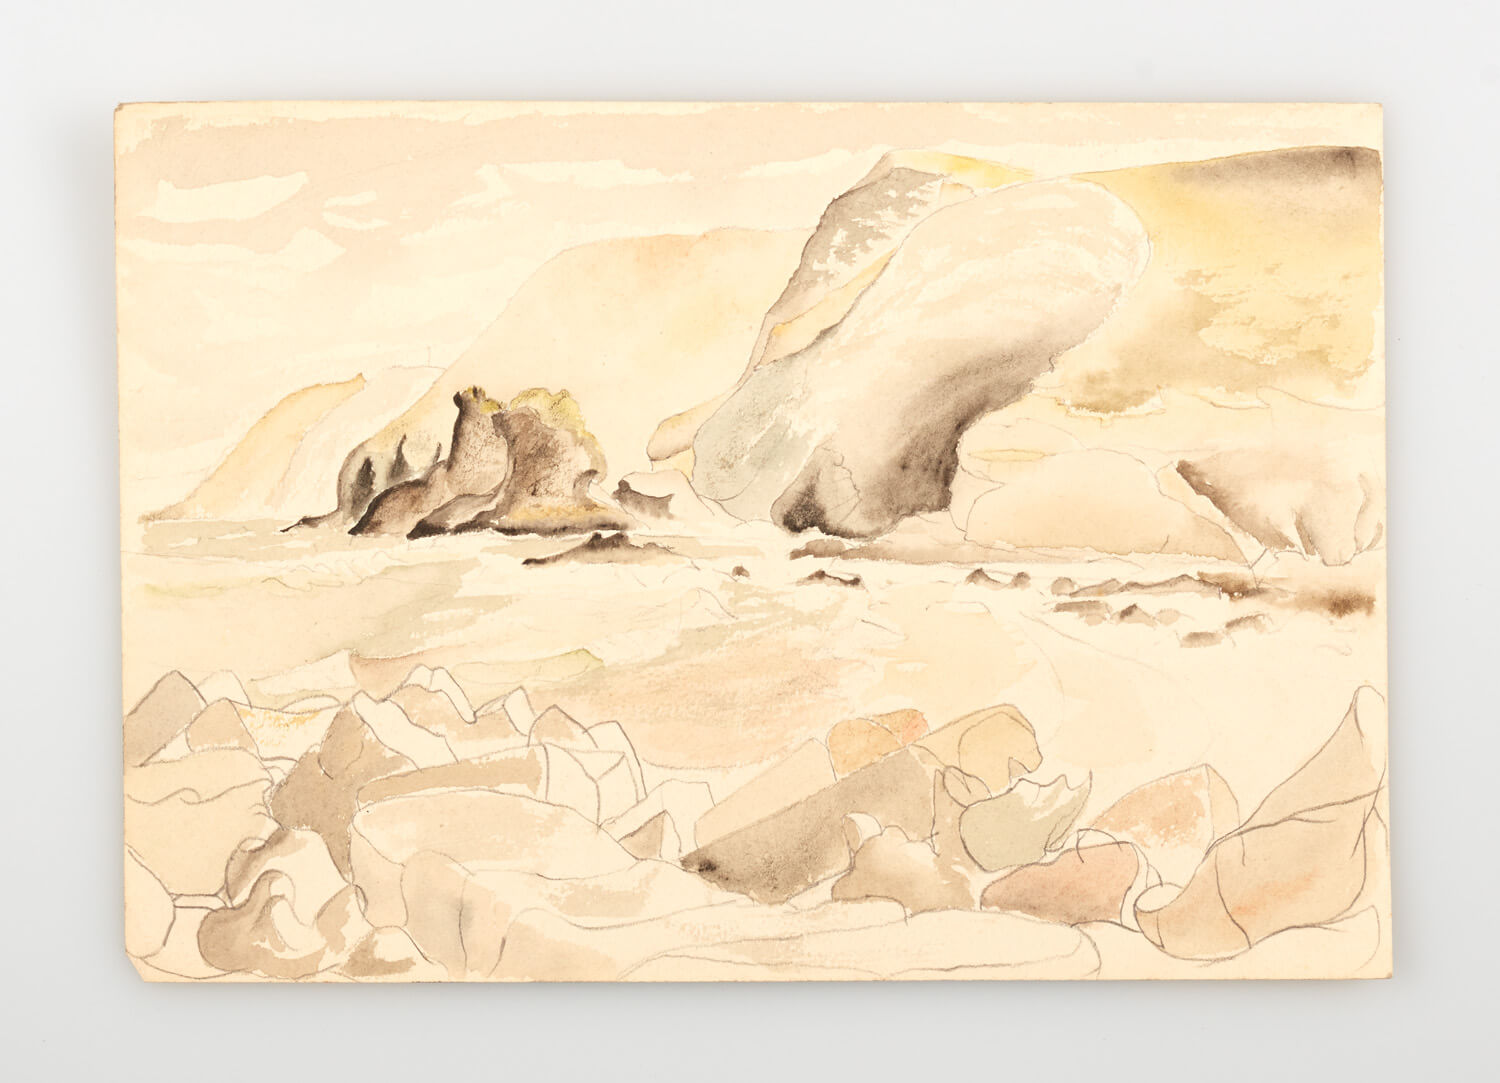 JB255 - Rock and sea, Cornwall sketch - 1946 - 17.5 25 cm - Watercolour